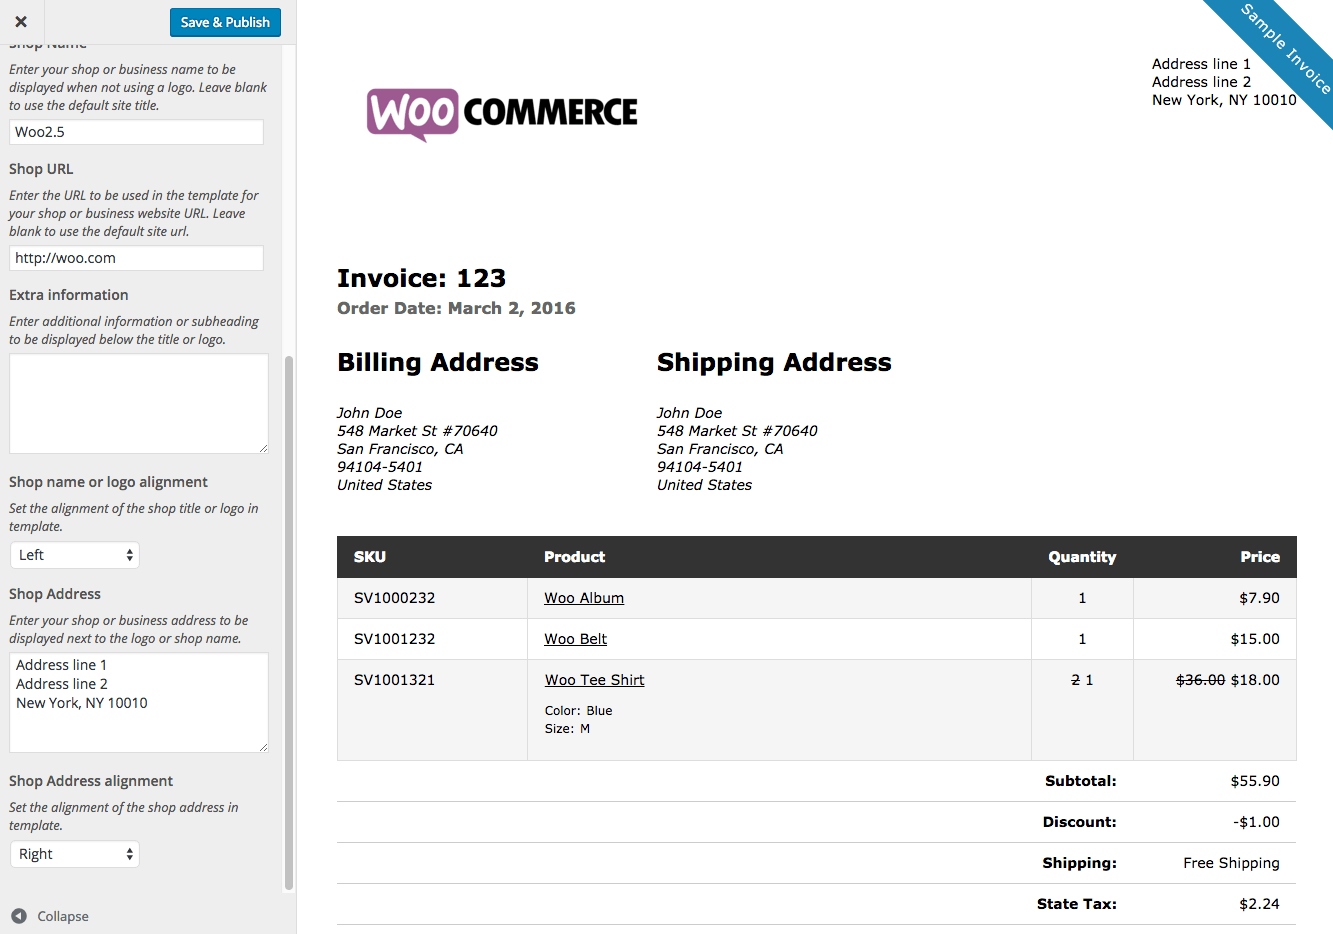 Modaoxus  Gorgeous Woocommerce Print Invoices Amp Packing Lists  Woocommerce Docs With Fetching Woocommerce Print Invoices  Packing Lists Customizer With Delectable Company Invoice Template Also Invoice Spreadsheet In Addition Hotel Room Invoice And Massage Invoice As Well As Work Invoice Sample Additionally Invoice Translate From Docswoocommercecom With Modaoxus  Fetching Woocommerce Print Invoices Amp Packing Lists  Woocommerce Docs With Delectable Woocommerce Print Invoices  Packing Lists Customizer And Gorgeous Company Invoice Template Also Invoice Spreadsheet In Addition Hotel Room Invoice From Docswoocommercecom